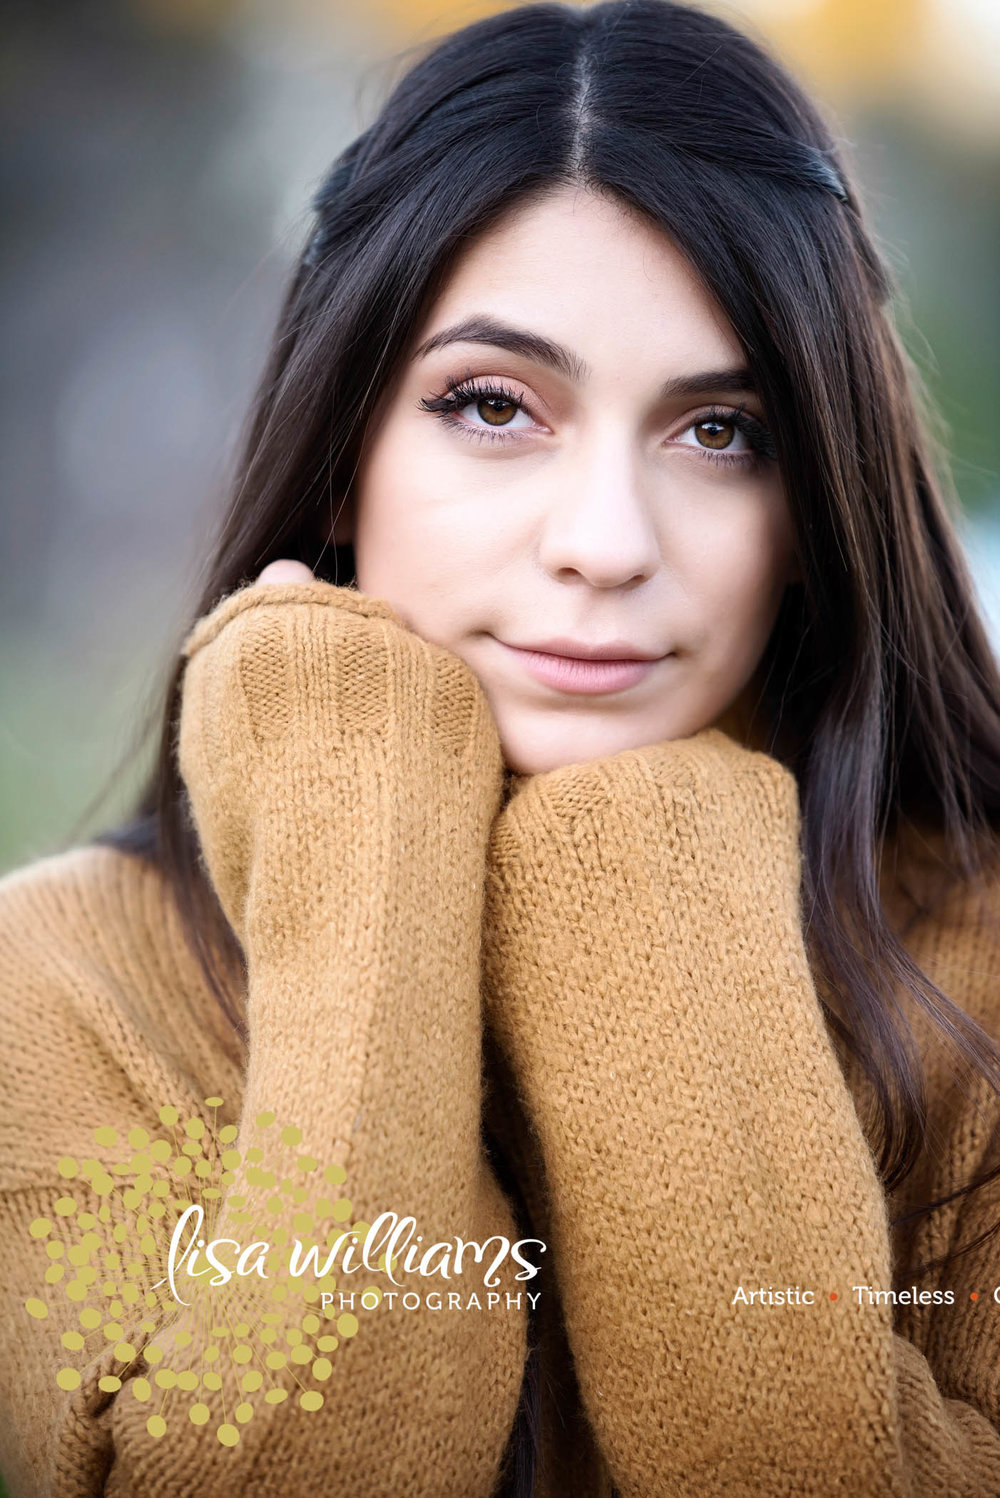 Lisa Williams photography – grass valley portrait photographer- senior portrait photographer- northern California senior portraits- Nevada county senior portraits – Colfax Senior Portraits – Rocklin Senior Portraits- Roseville Senior Portraits – t-19.jpg